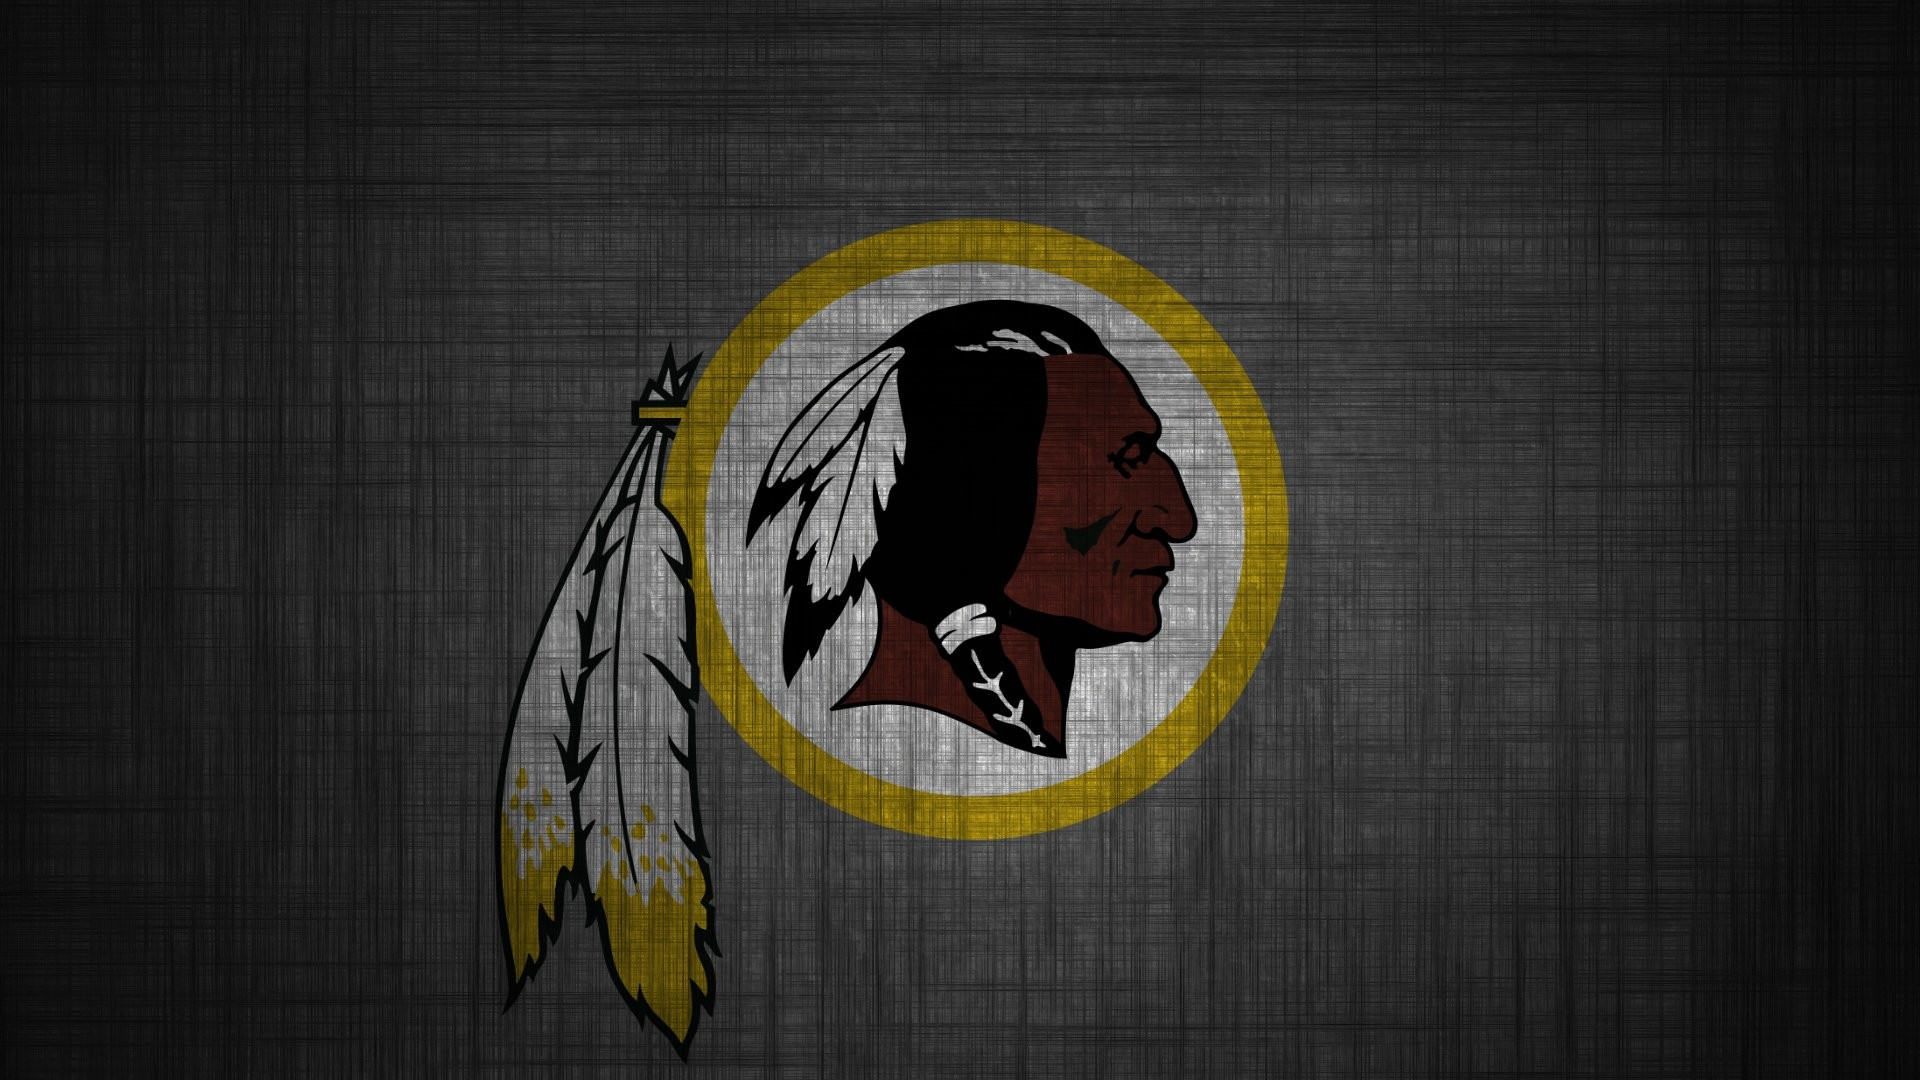 ff170753 Redskins Wallpaper for iPhone (67+ images)